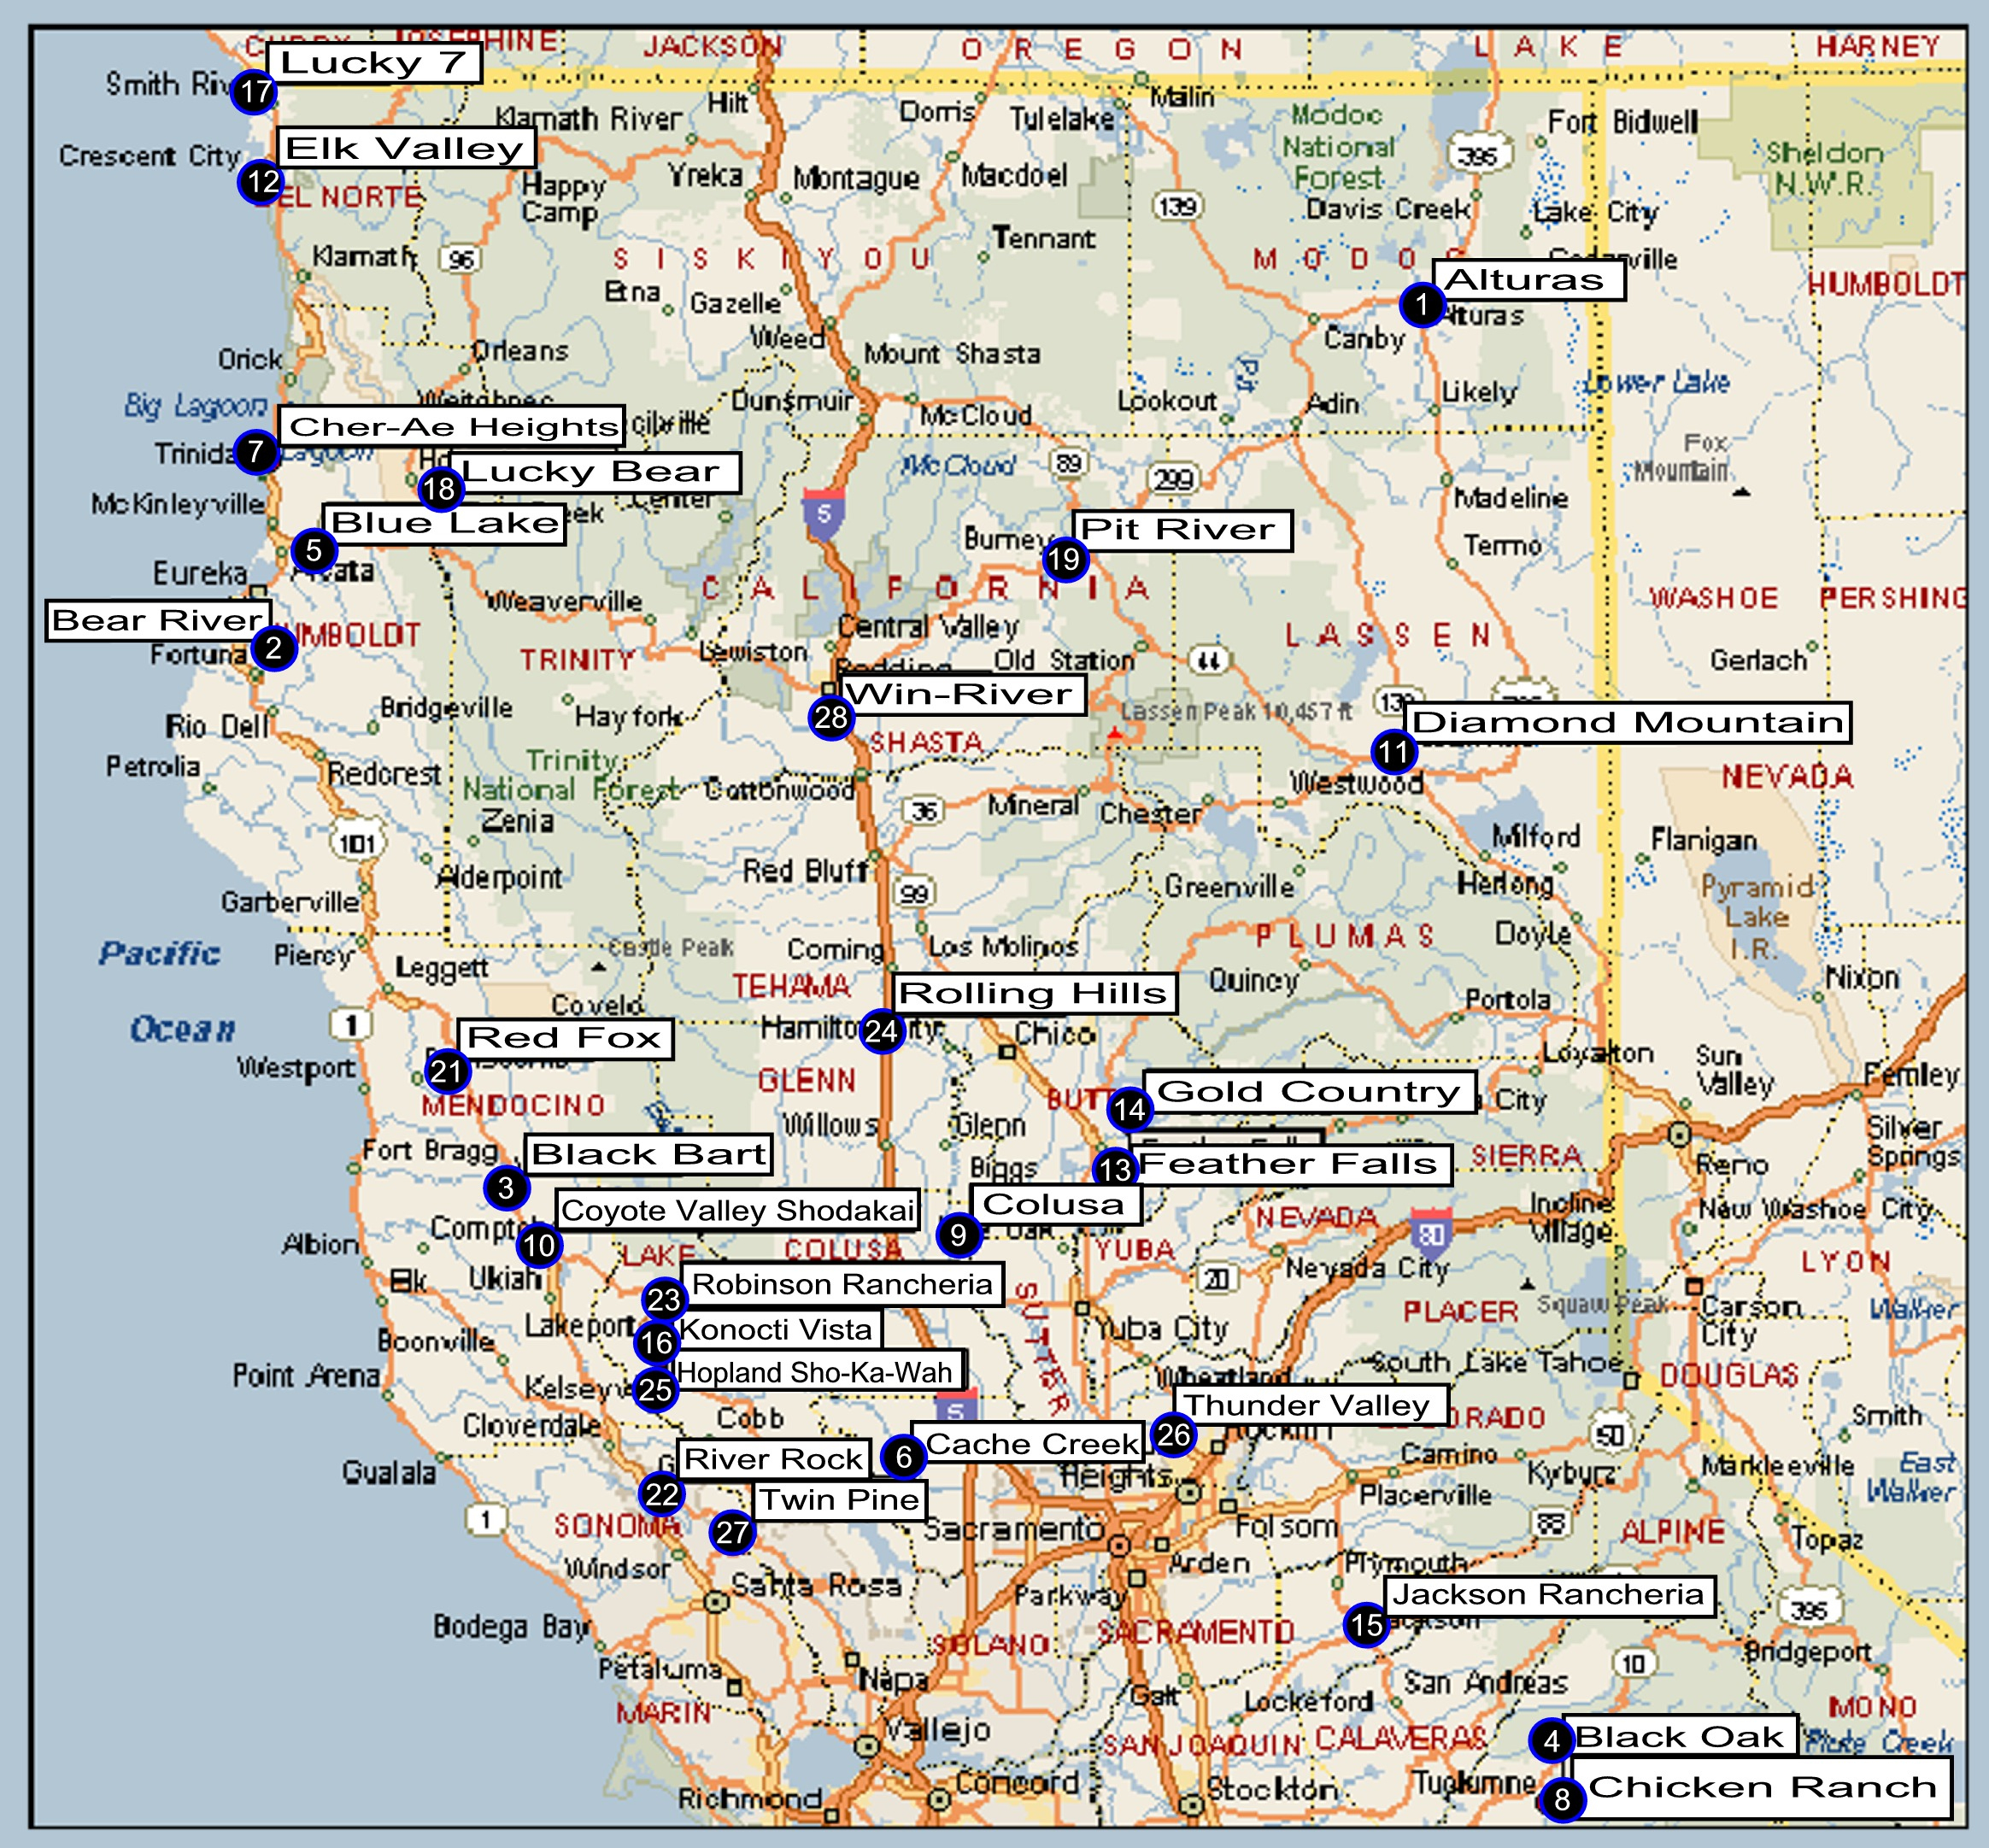 Norcal Map California State Map Northern California Casino Map - Casinos In California Map